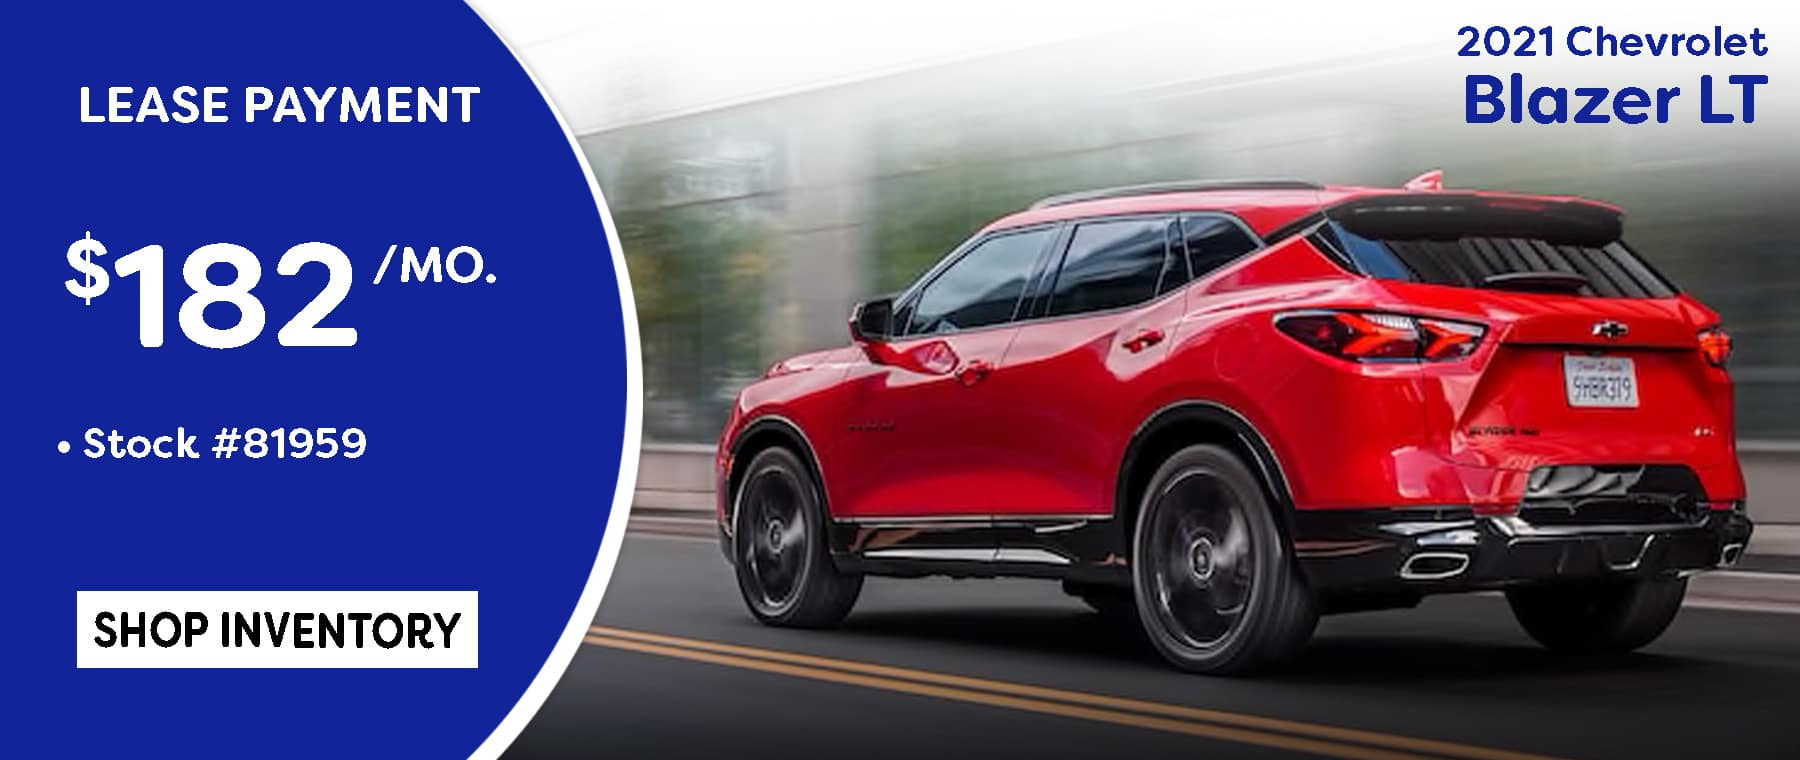 July 2021 Blazer LT Lease Special $182/mo.*